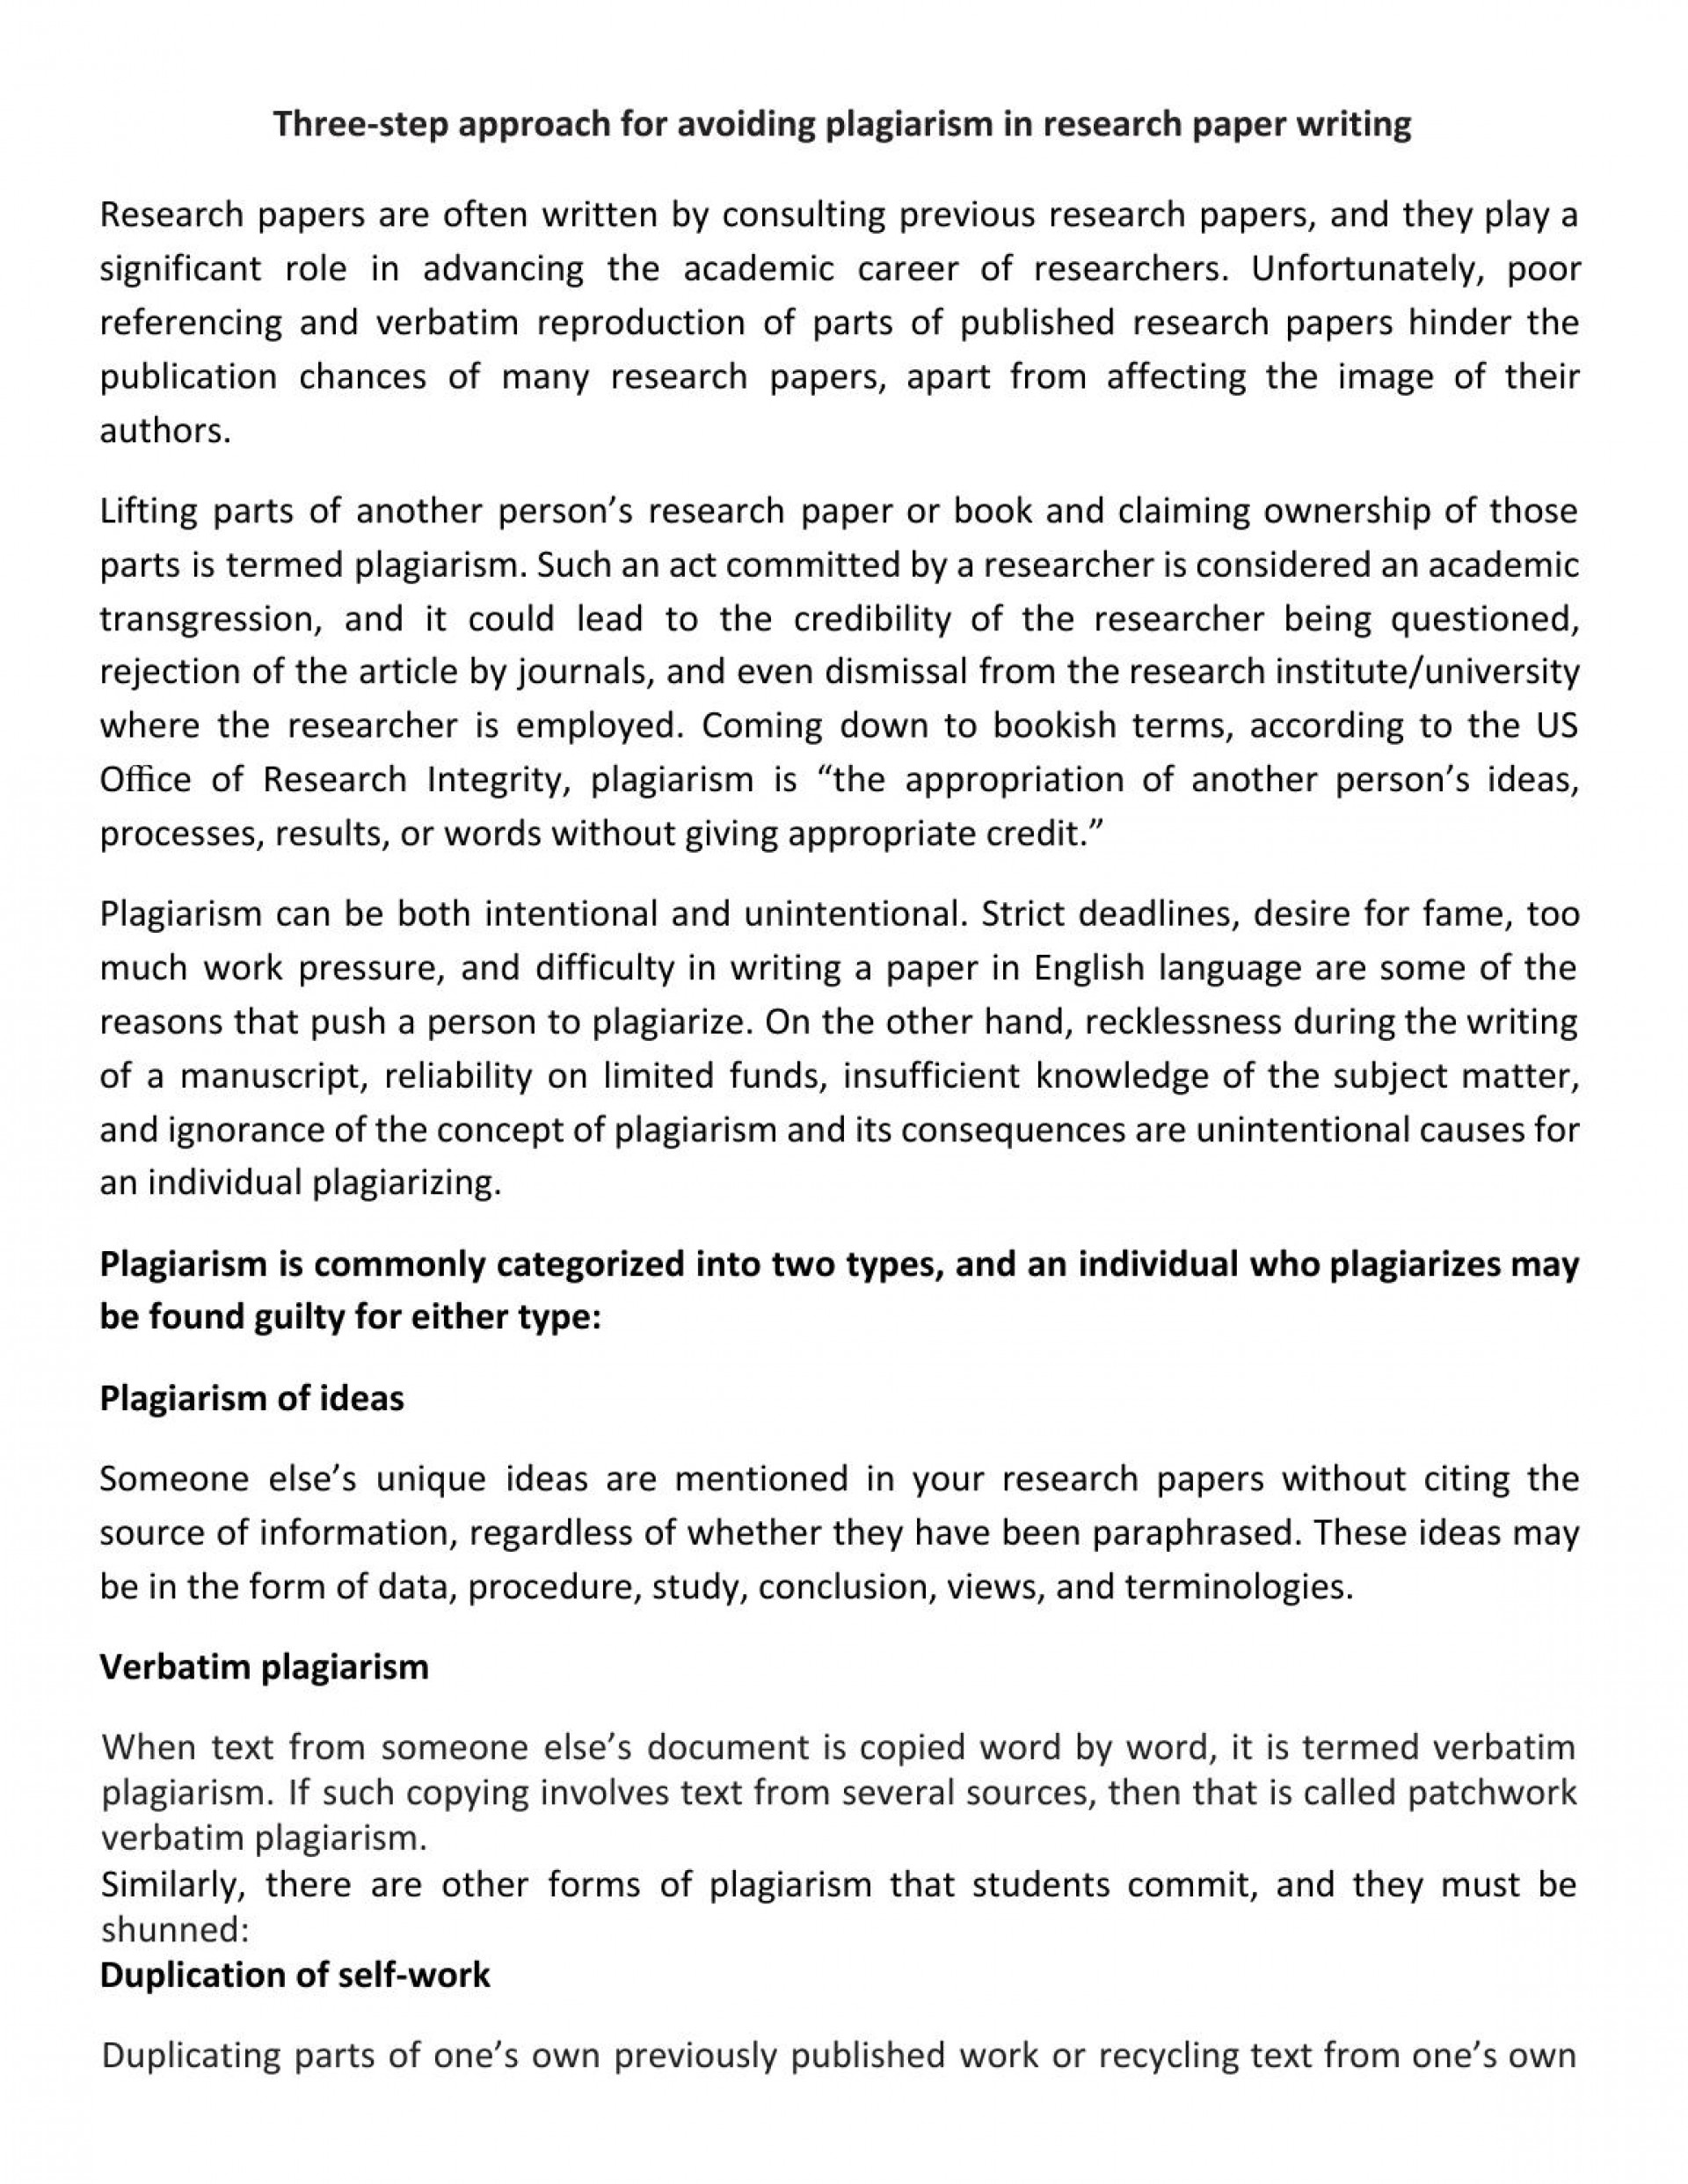 006 Page 1 How Do I Write Research Paper Without Wondrous A Plagiarizing You To Avoid Plagiarism 1920